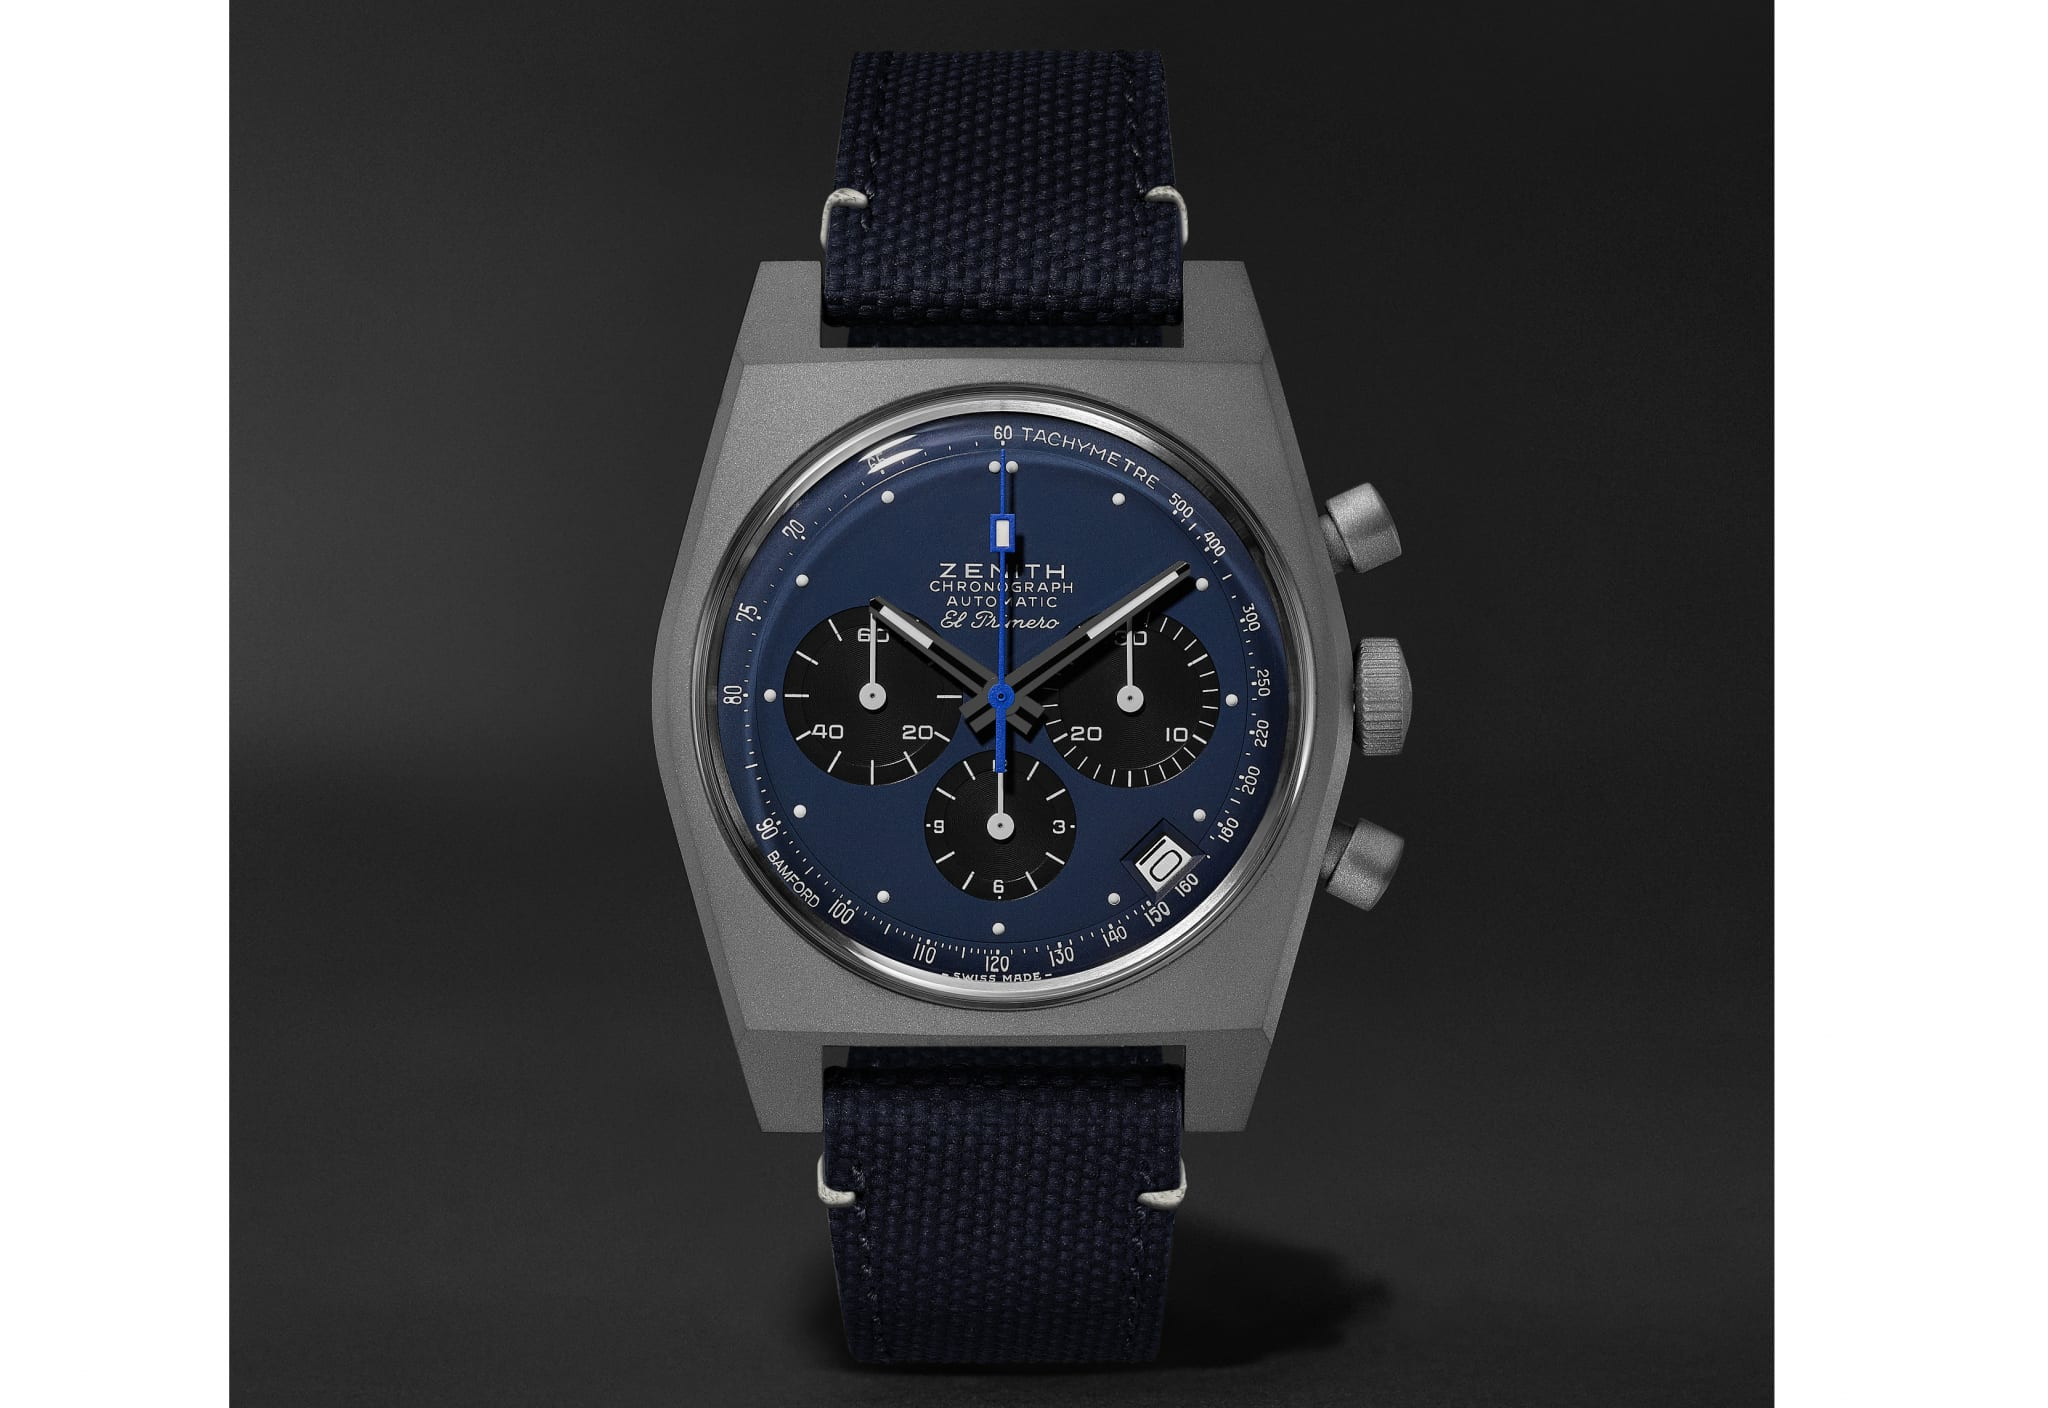 El_Primero_Revival_A384_'Edge_of_Space'_Limited_Edition_Automatic_Chronograph_37mm_Titanium_and_Rubber_Watch,_Ref._No._97.A384.40027